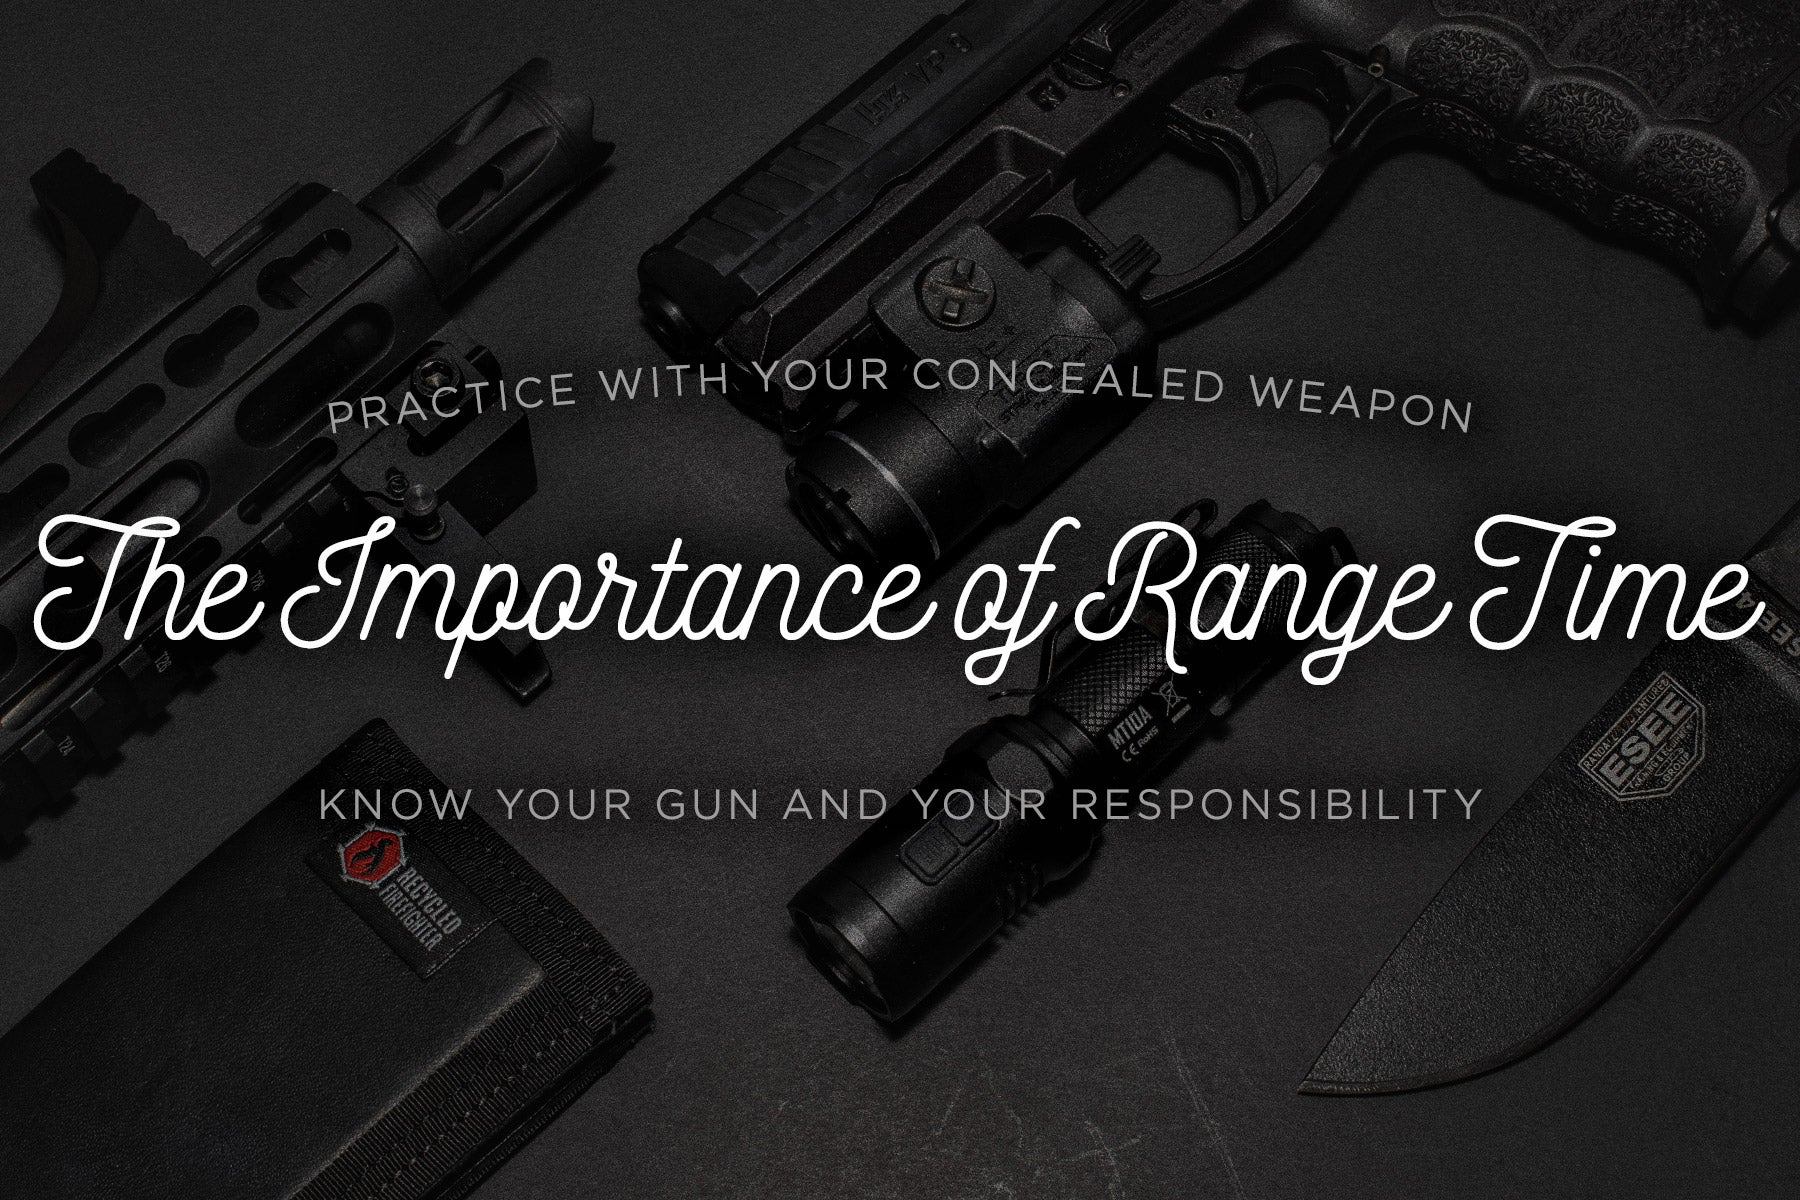 Practice with your concealed carry weapon